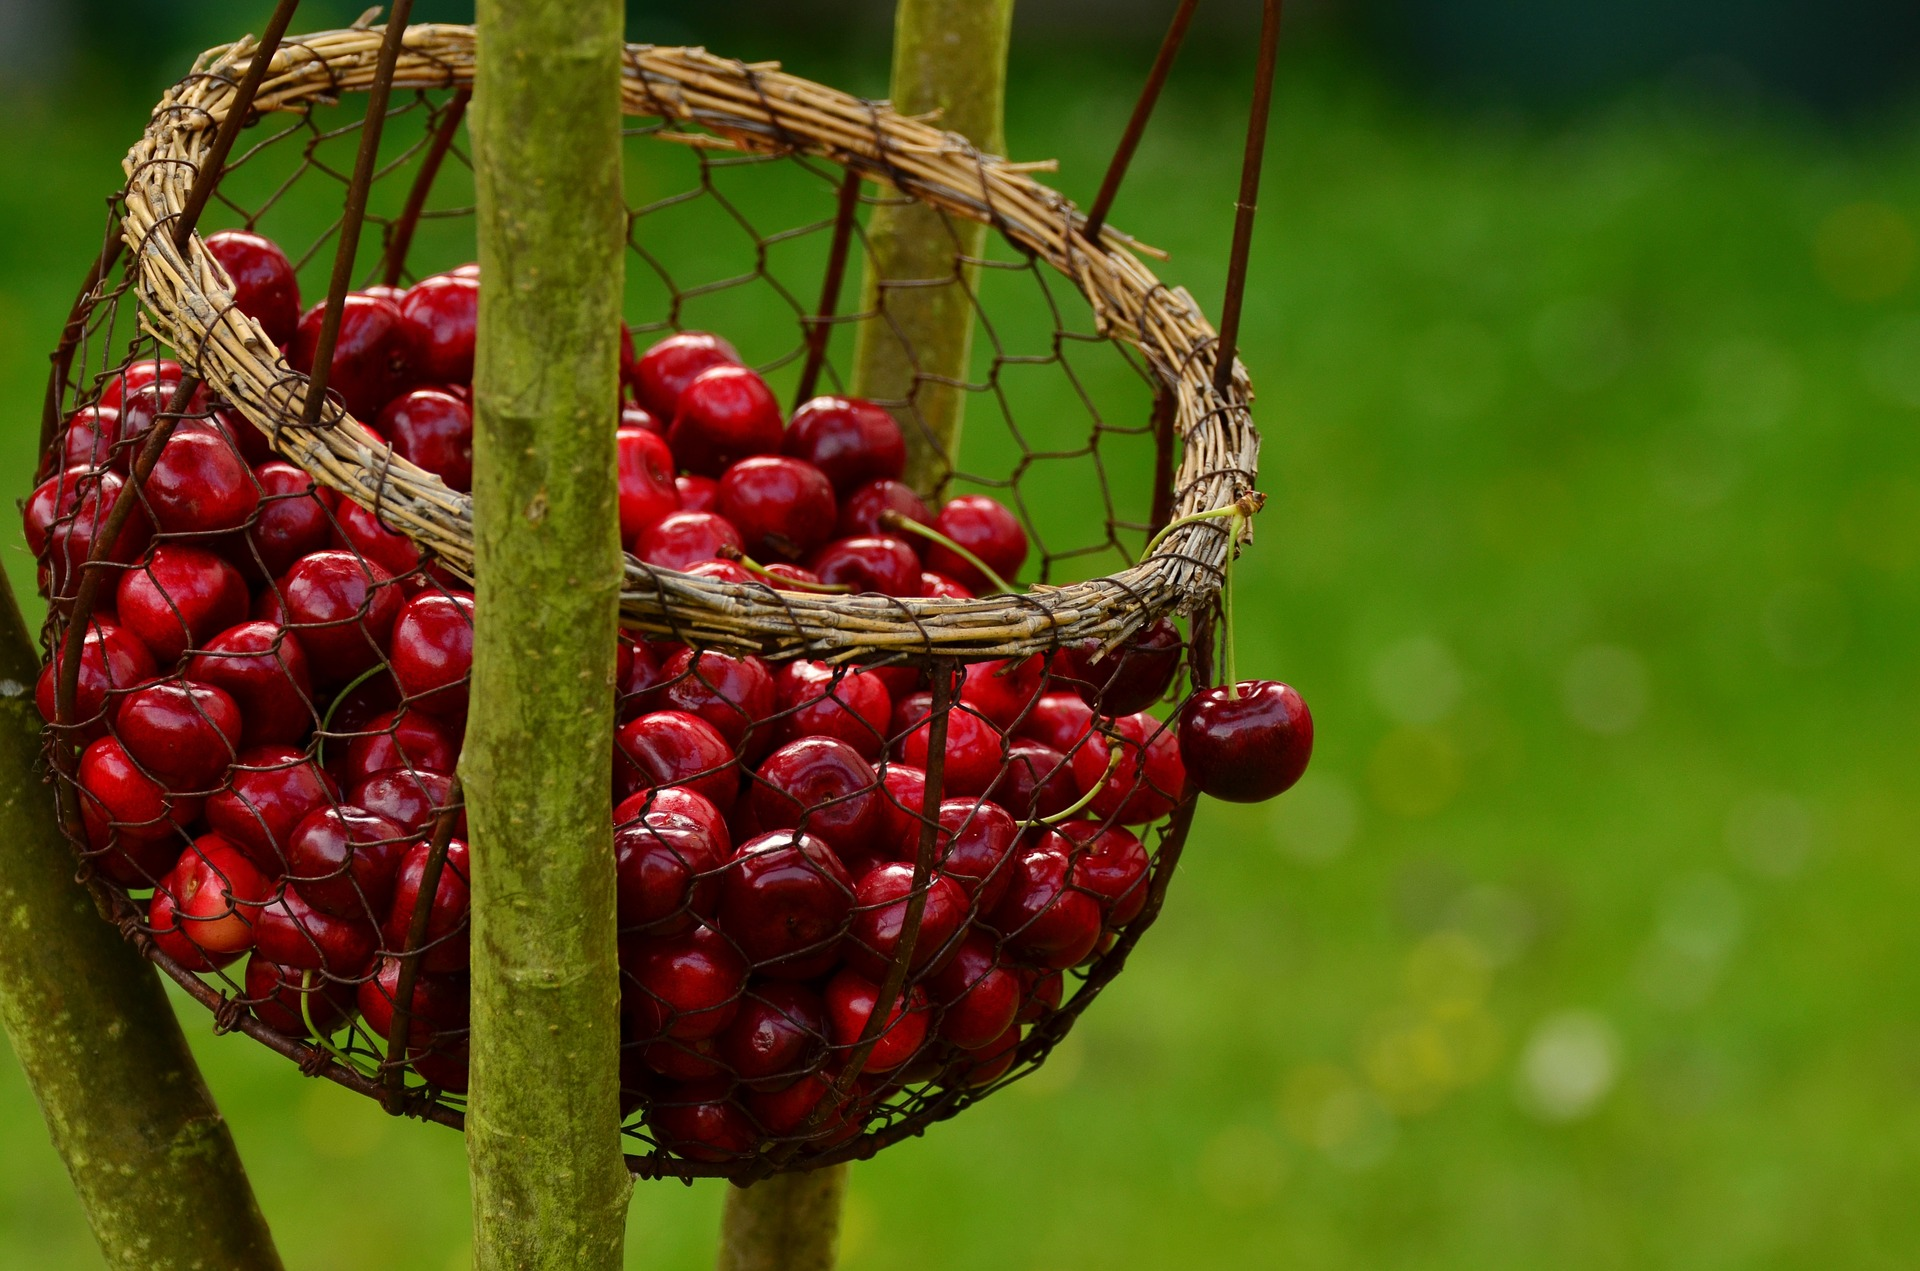 Cherry trees are so worth the space in the garden. Nothing beats a cherry pie, or straight off the tree. Again, netting is crucial unless you're planting for the birds.